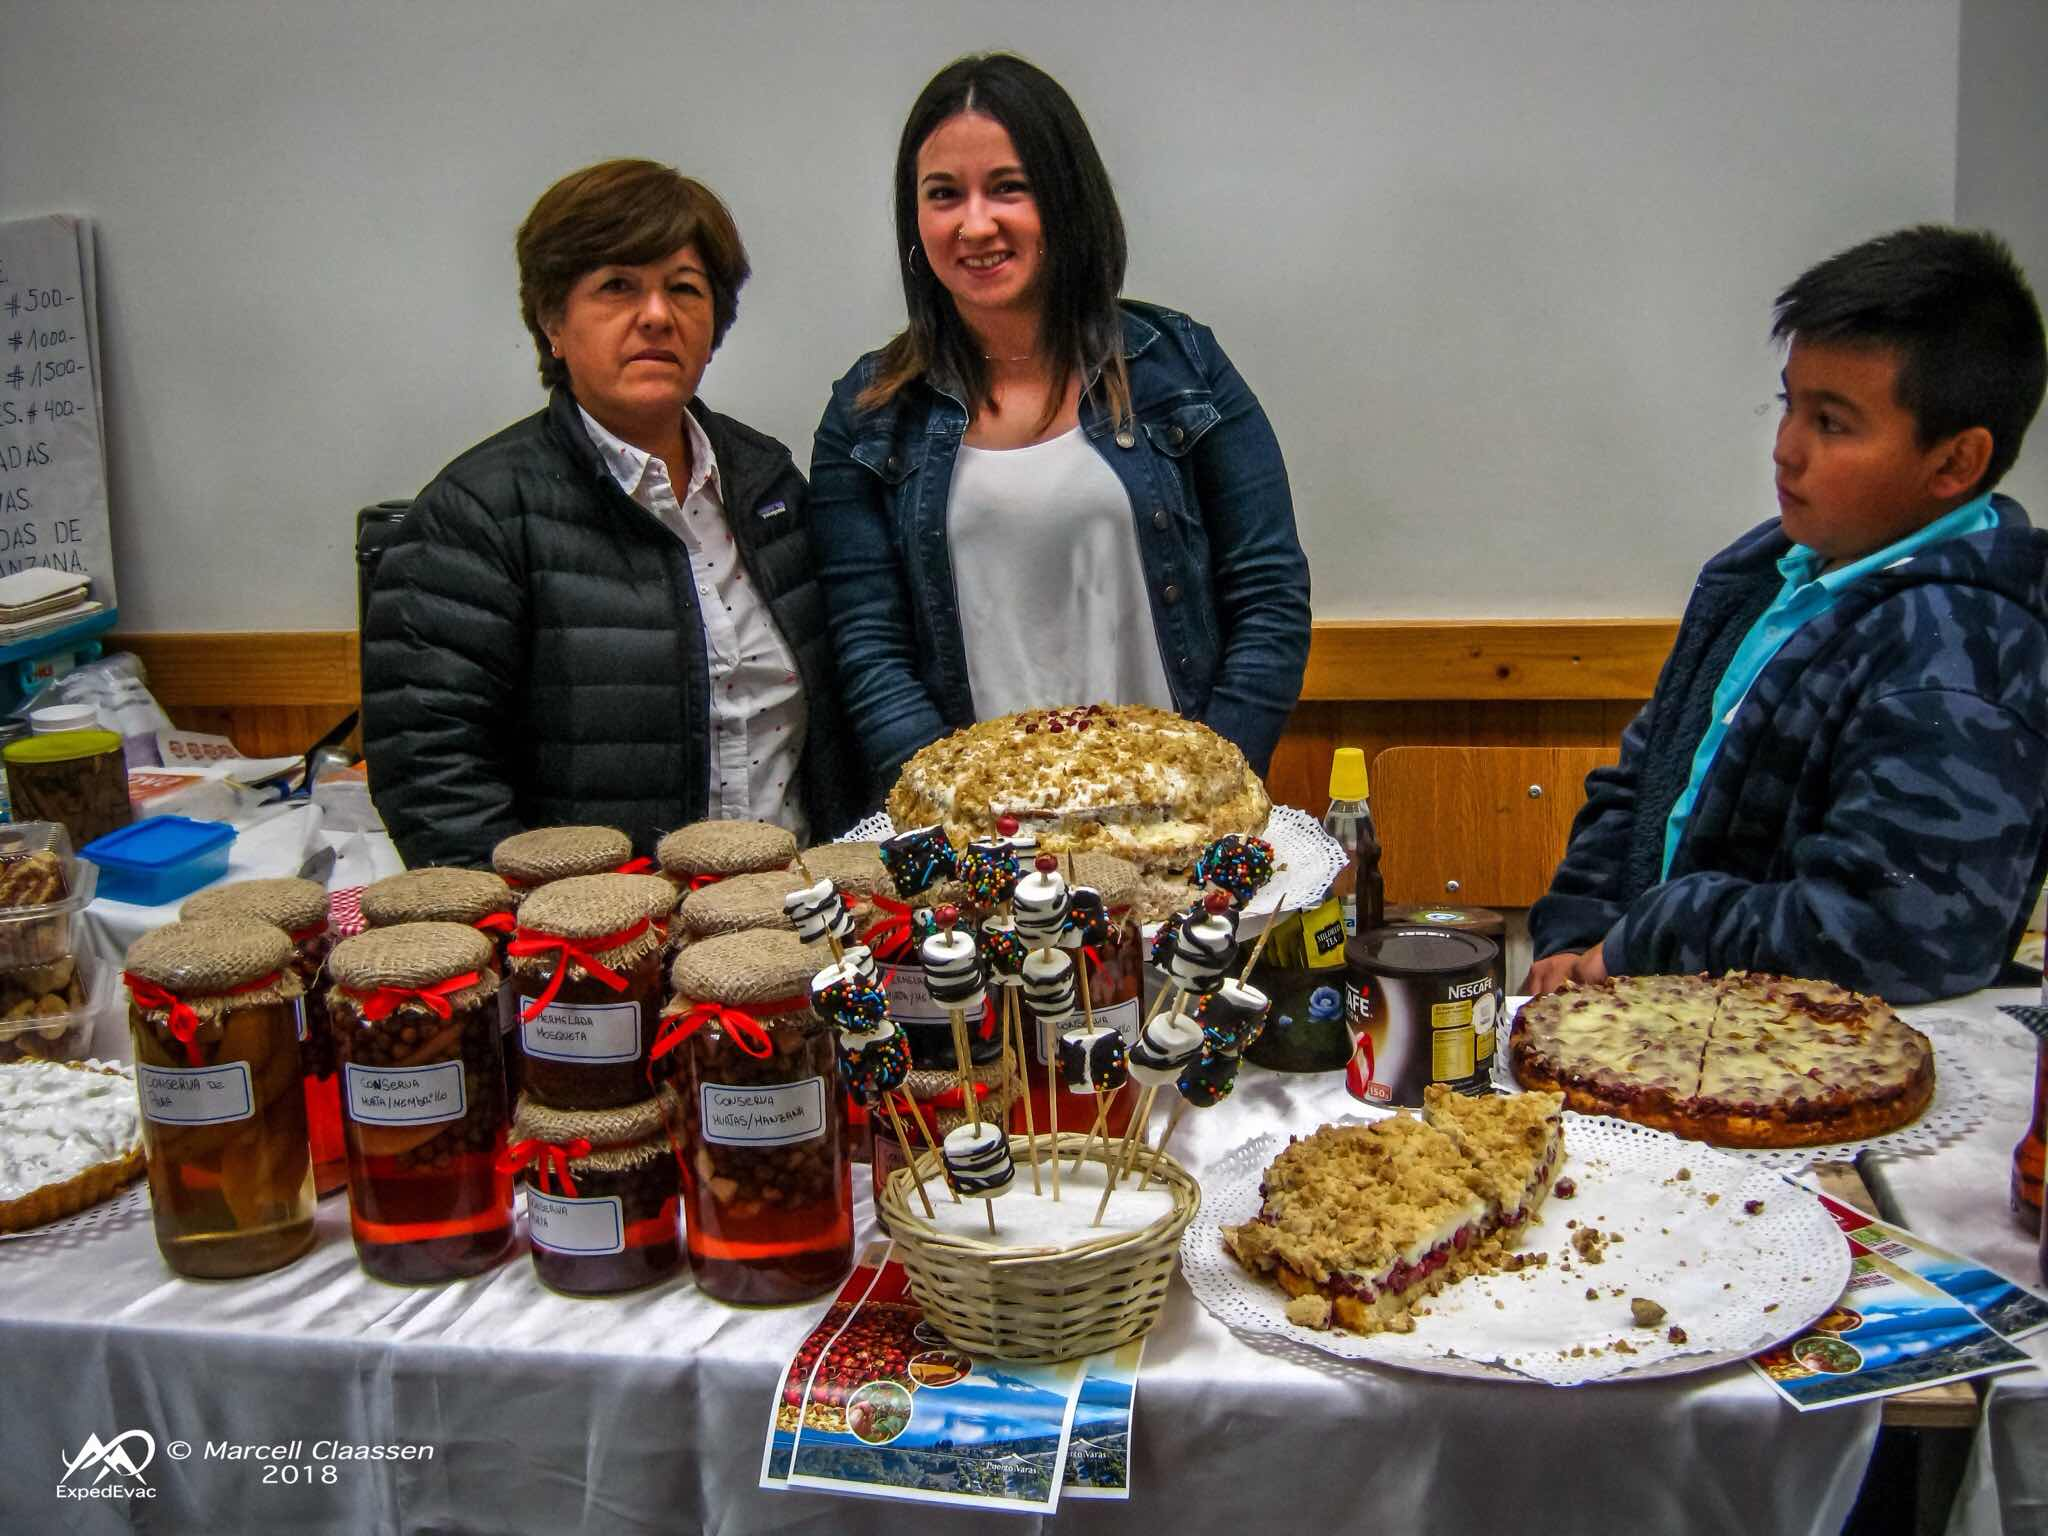 Ensenada, Chile: mother and daughter who bake amazing and make delicious conserves/jams.